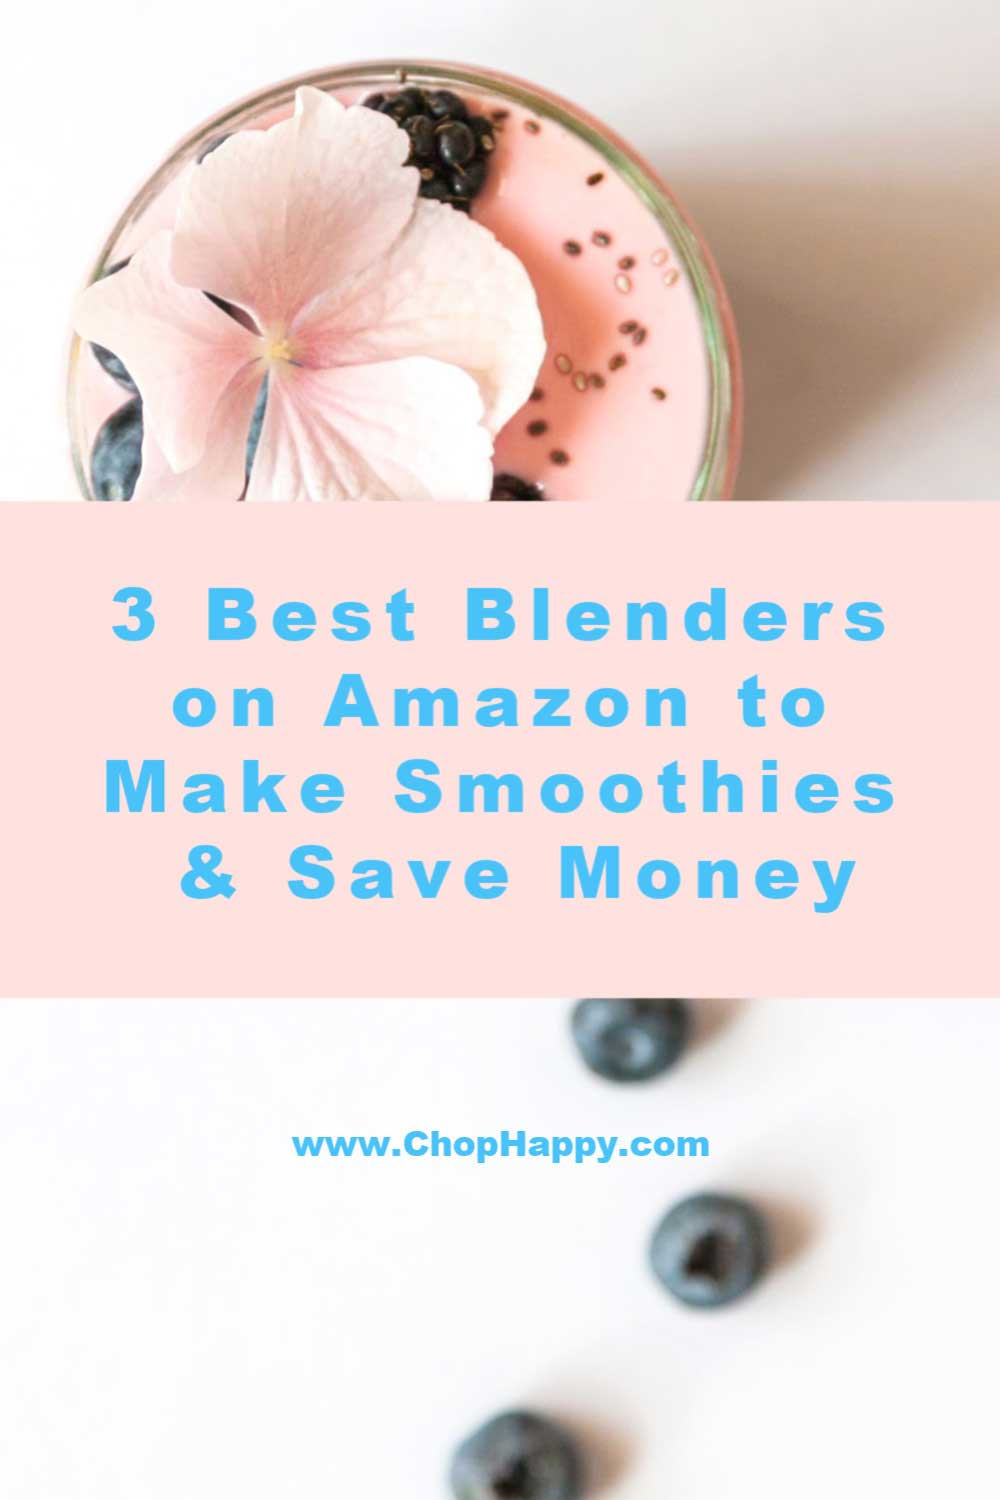 3 Best Blenders on Amazon to Make Smoothies & Save Money. When you are trying to save money making food at home is a great way to start. Smoothies are super easy to make and with the right blender they are delish. Here are 3 of the top blenders on Amazon. Happy Smoothie Making. www.ChopHappy.com #smoothies #blenders